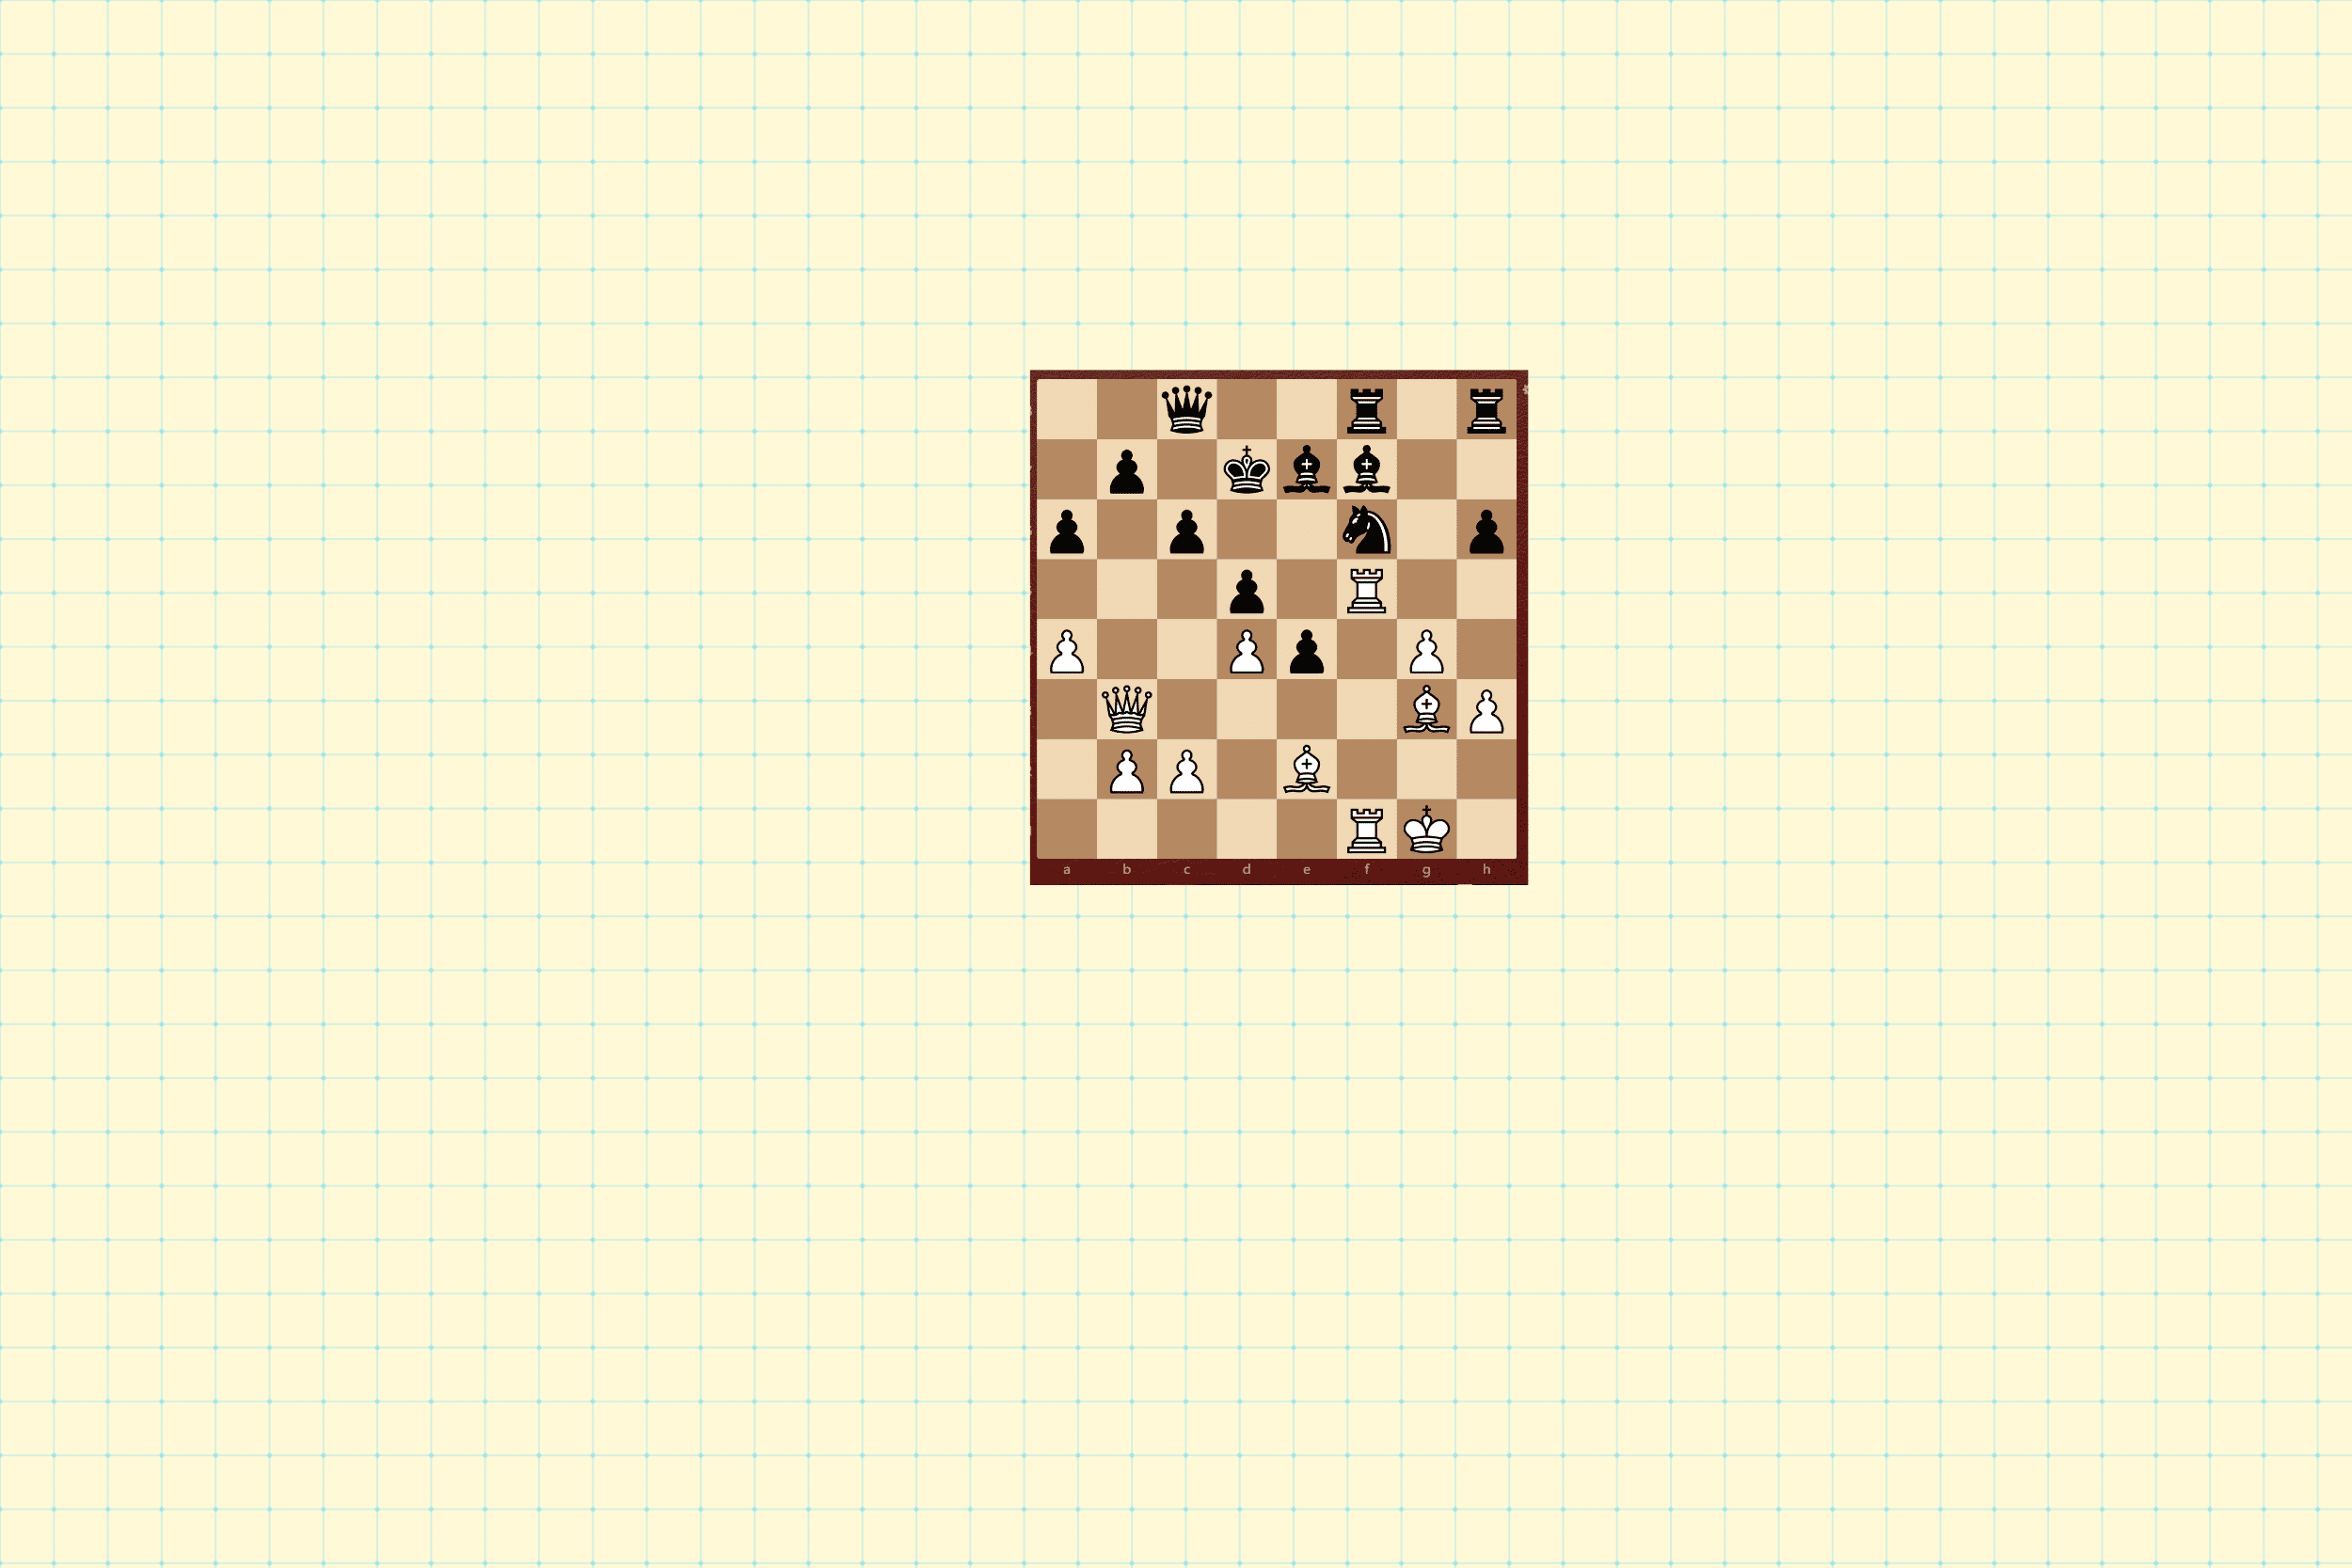 chess2.png